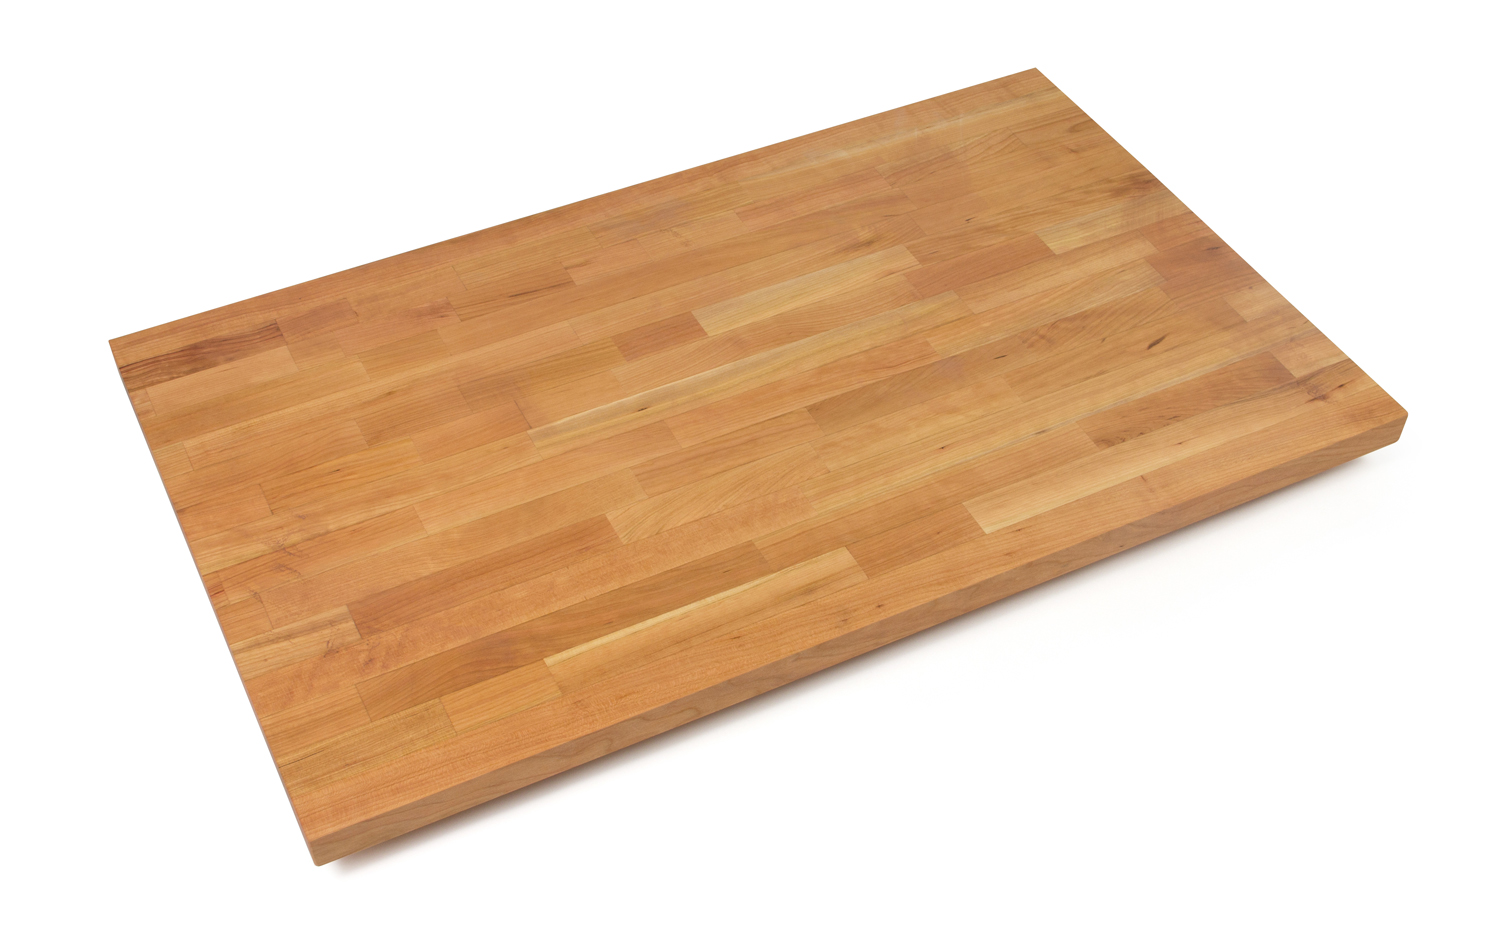 blended cherry butcher block countertop 25 inches wide